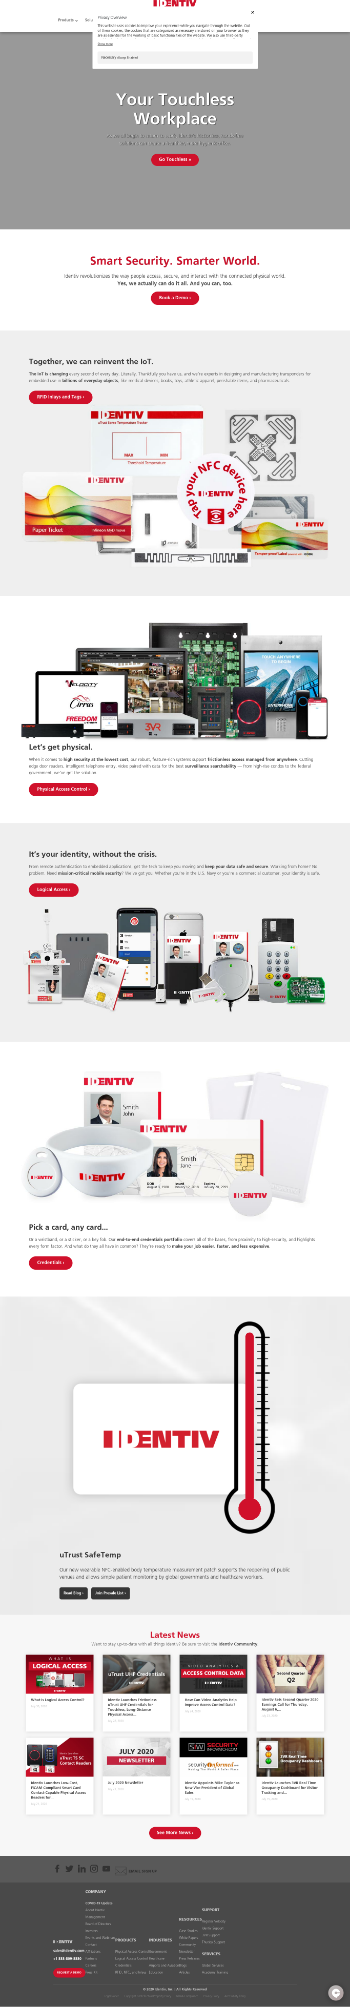 Identiv, Inc. Website Screenshot